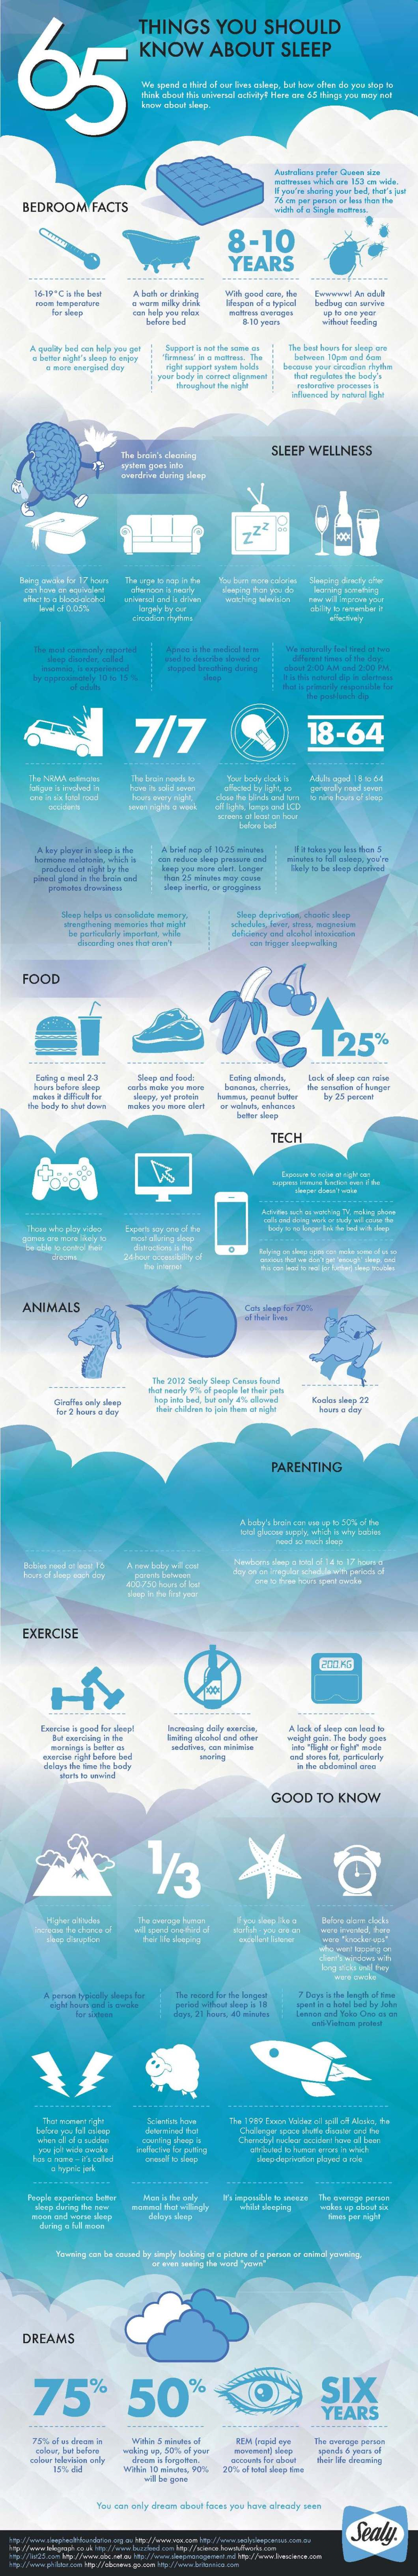 65 Surprising Facts About Sleeping - Infographic